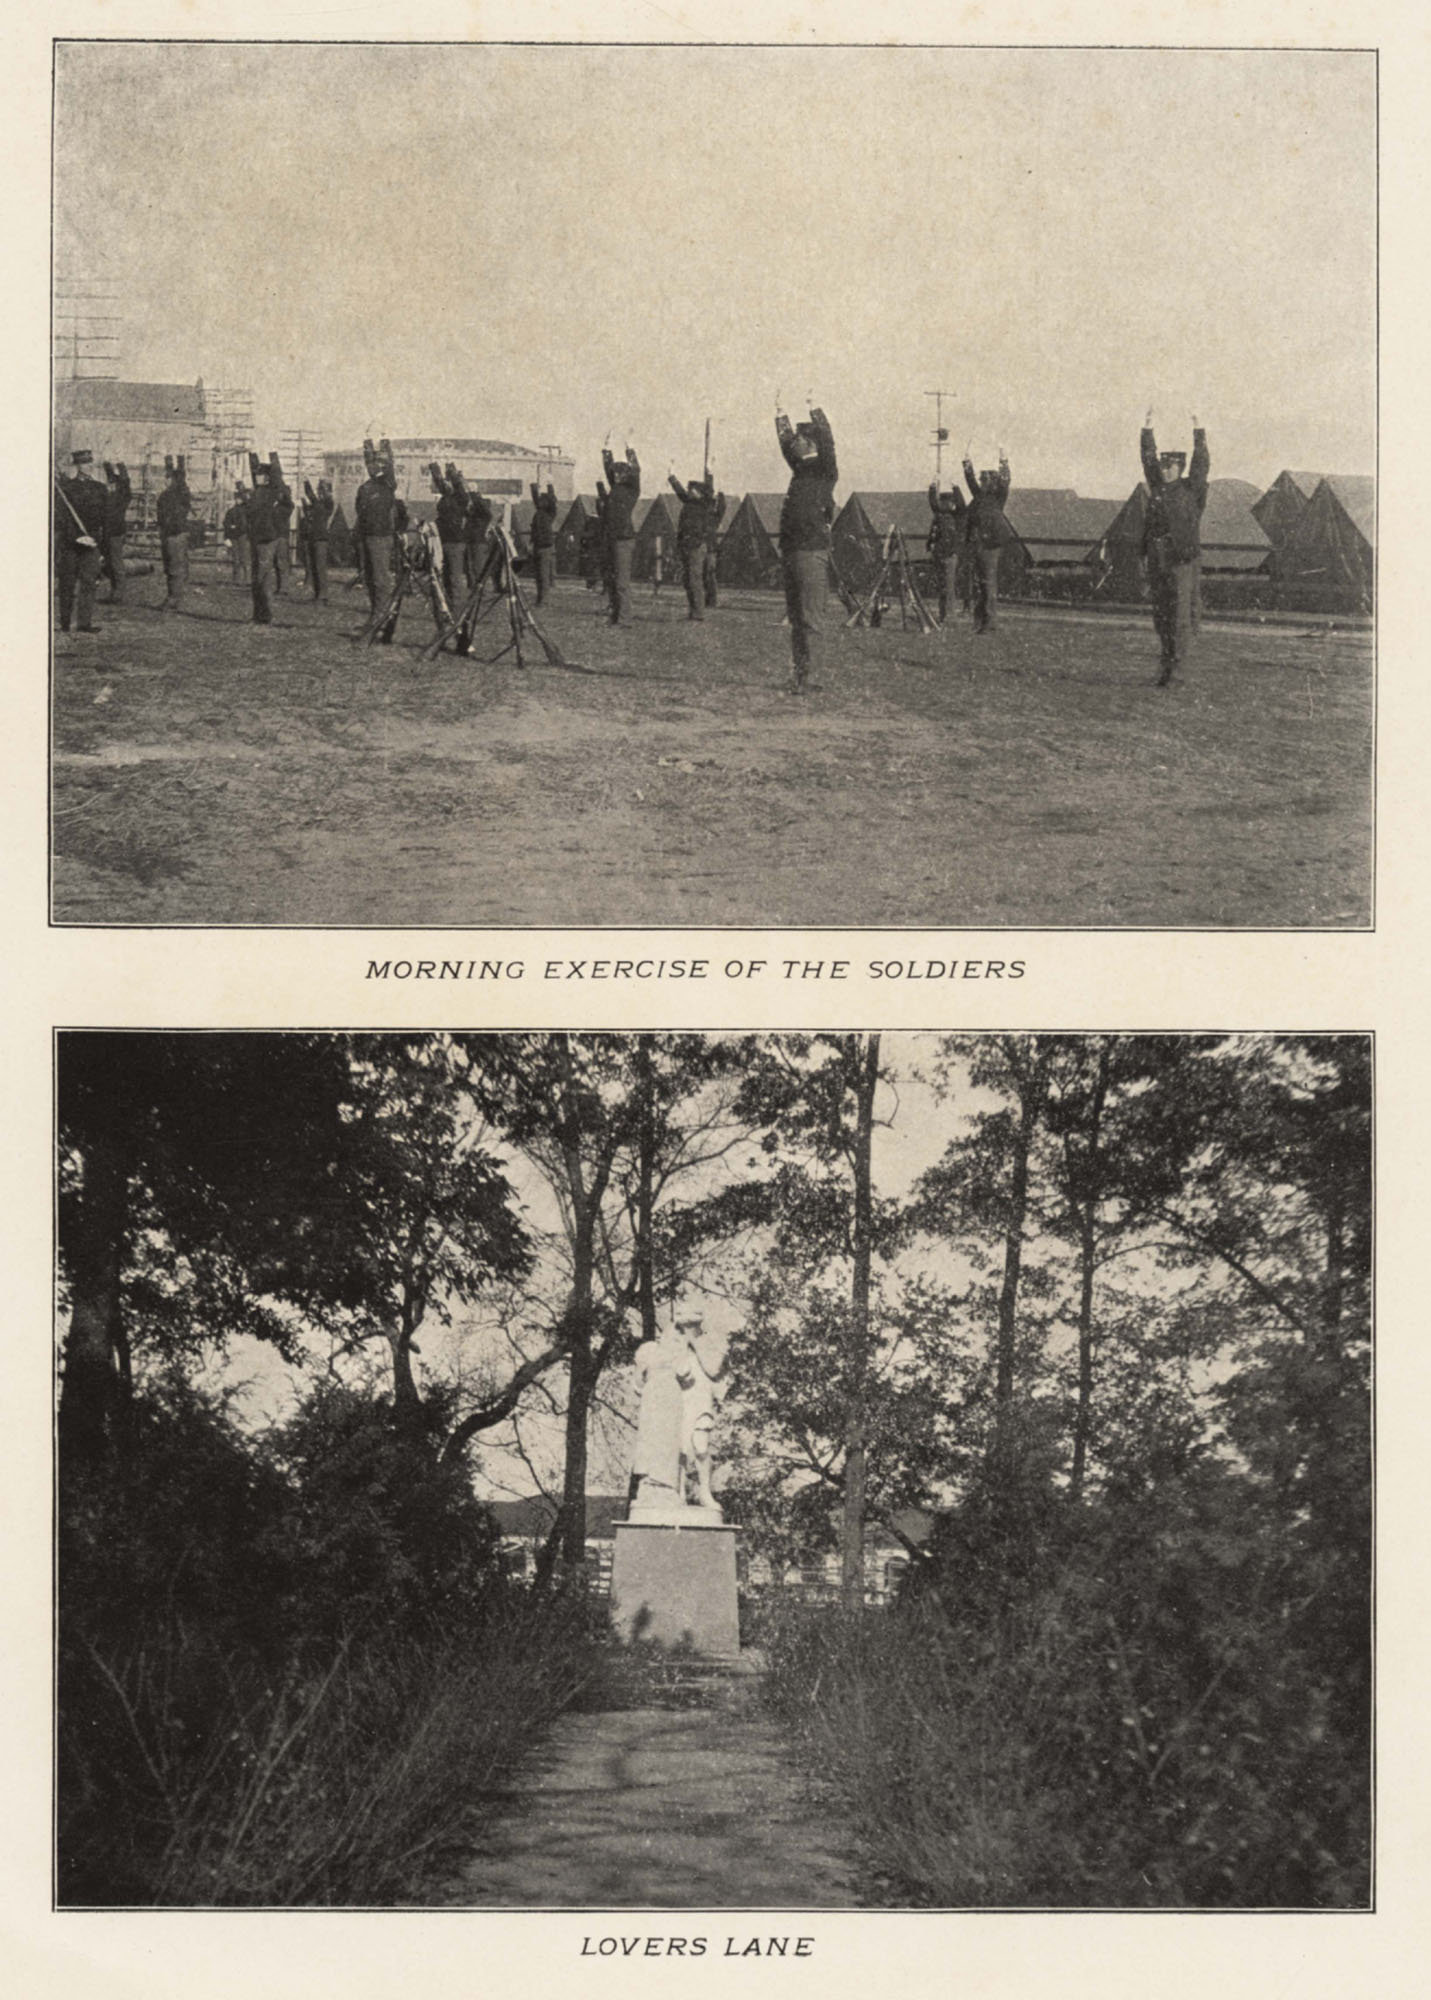 Morning Exercise of the Soldiers